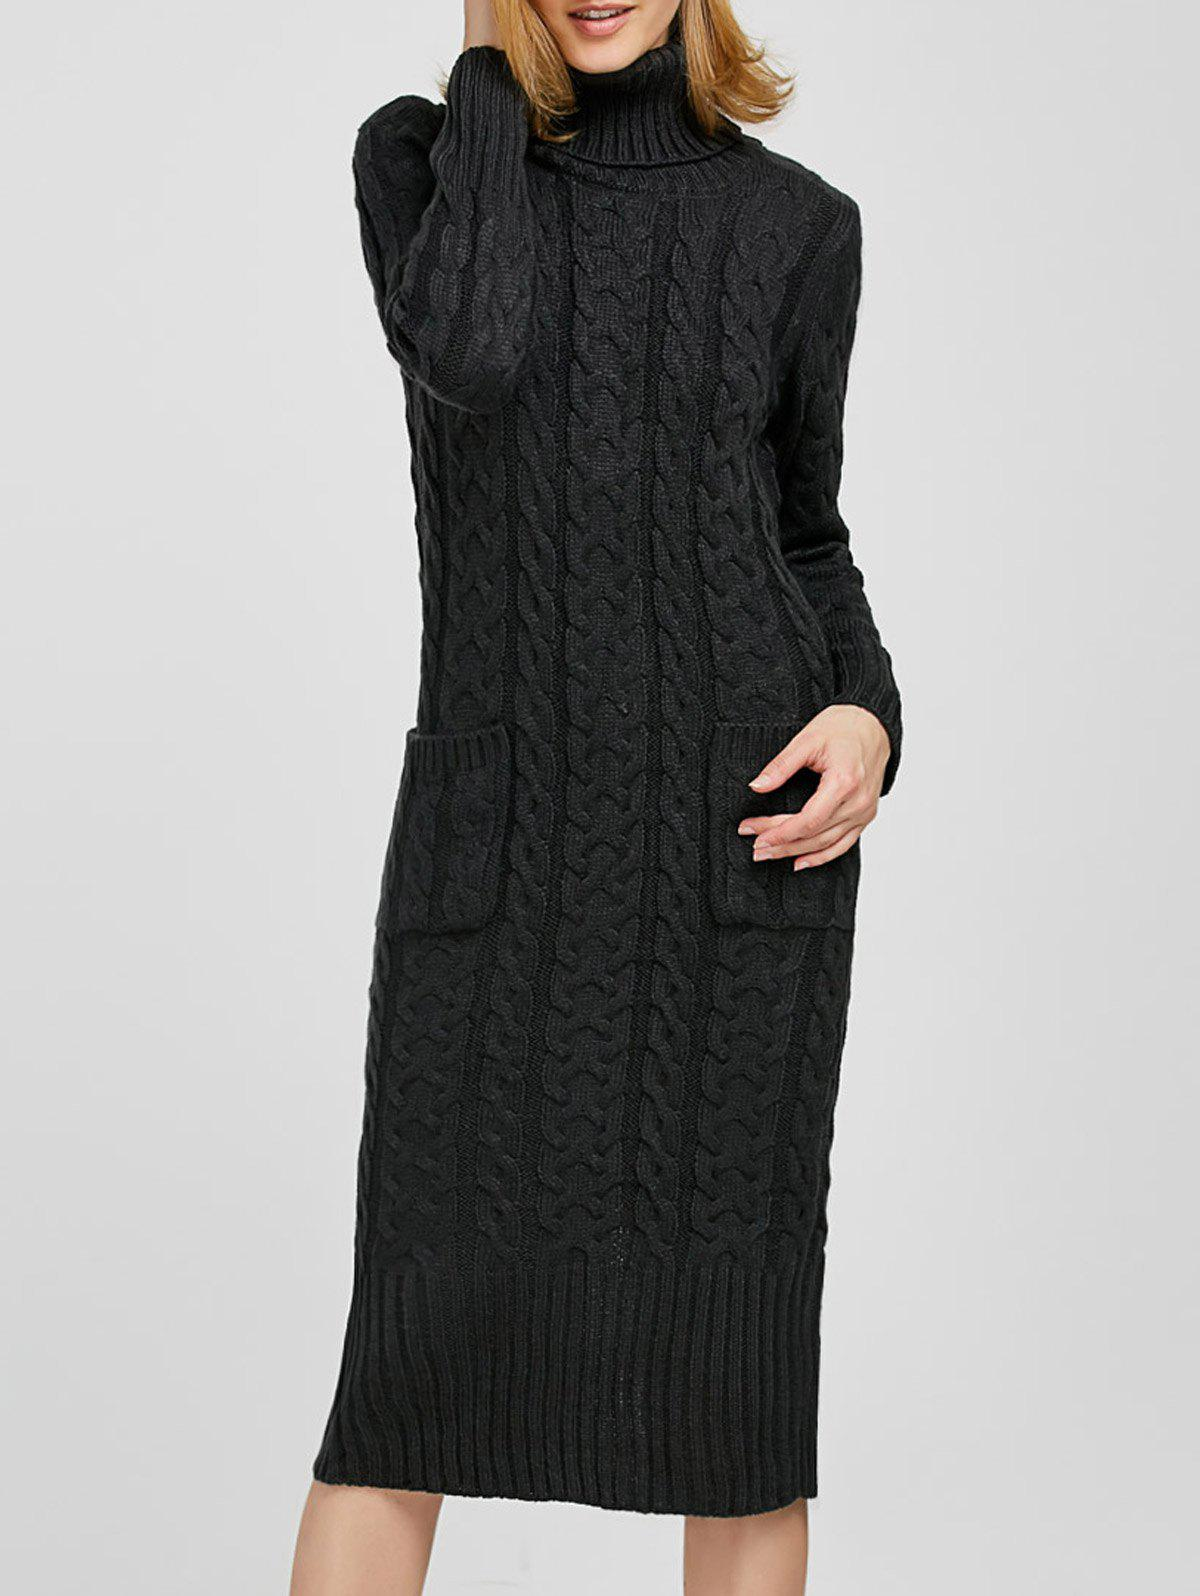 85af50a7eeca2 2019 Turtleneck Maxi Long Sleeve Cable Knit Sweater Dress